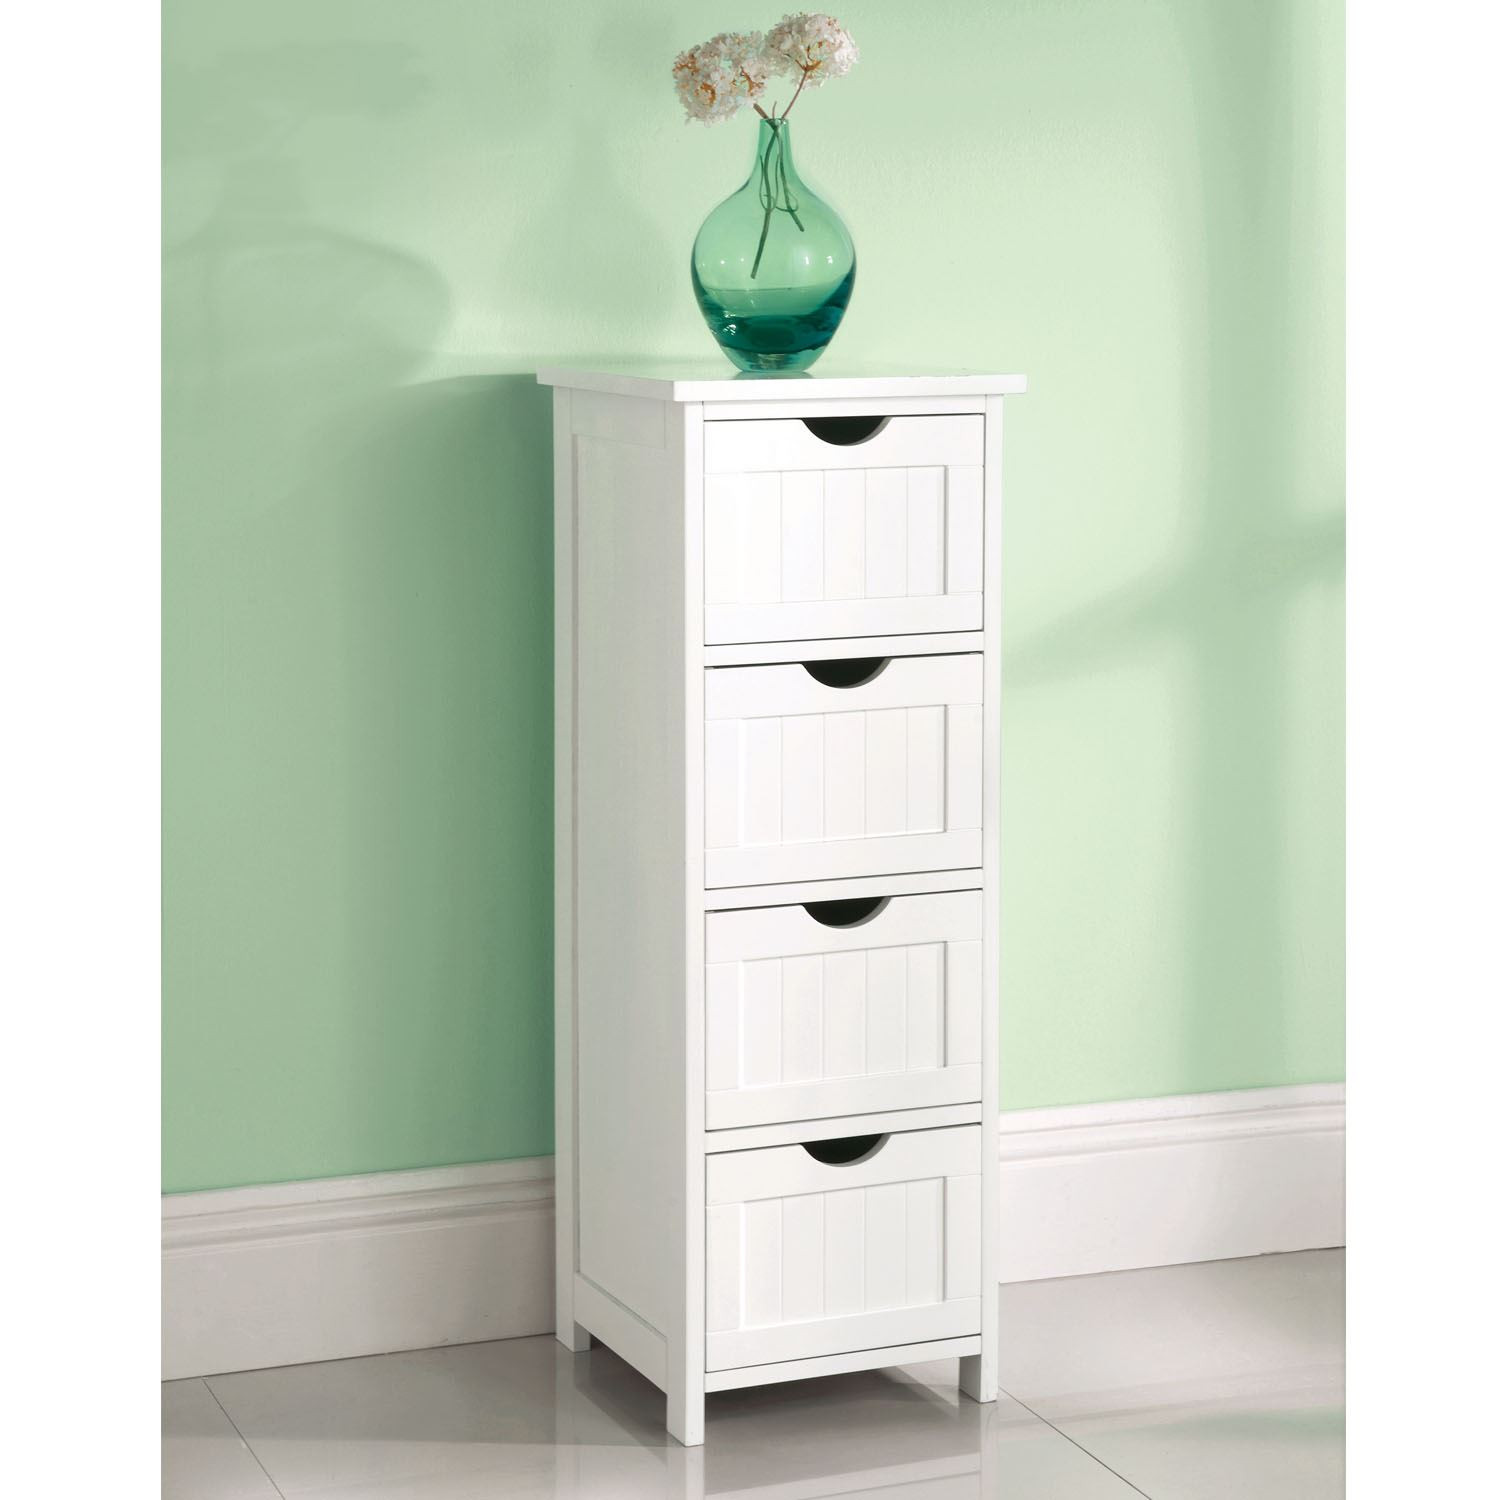 Best ideas about Bedroom Storage Cabinets . Save or Pin White Wooden 1 Drawer Bathroom Bedroom Cabinet Shelving Now.